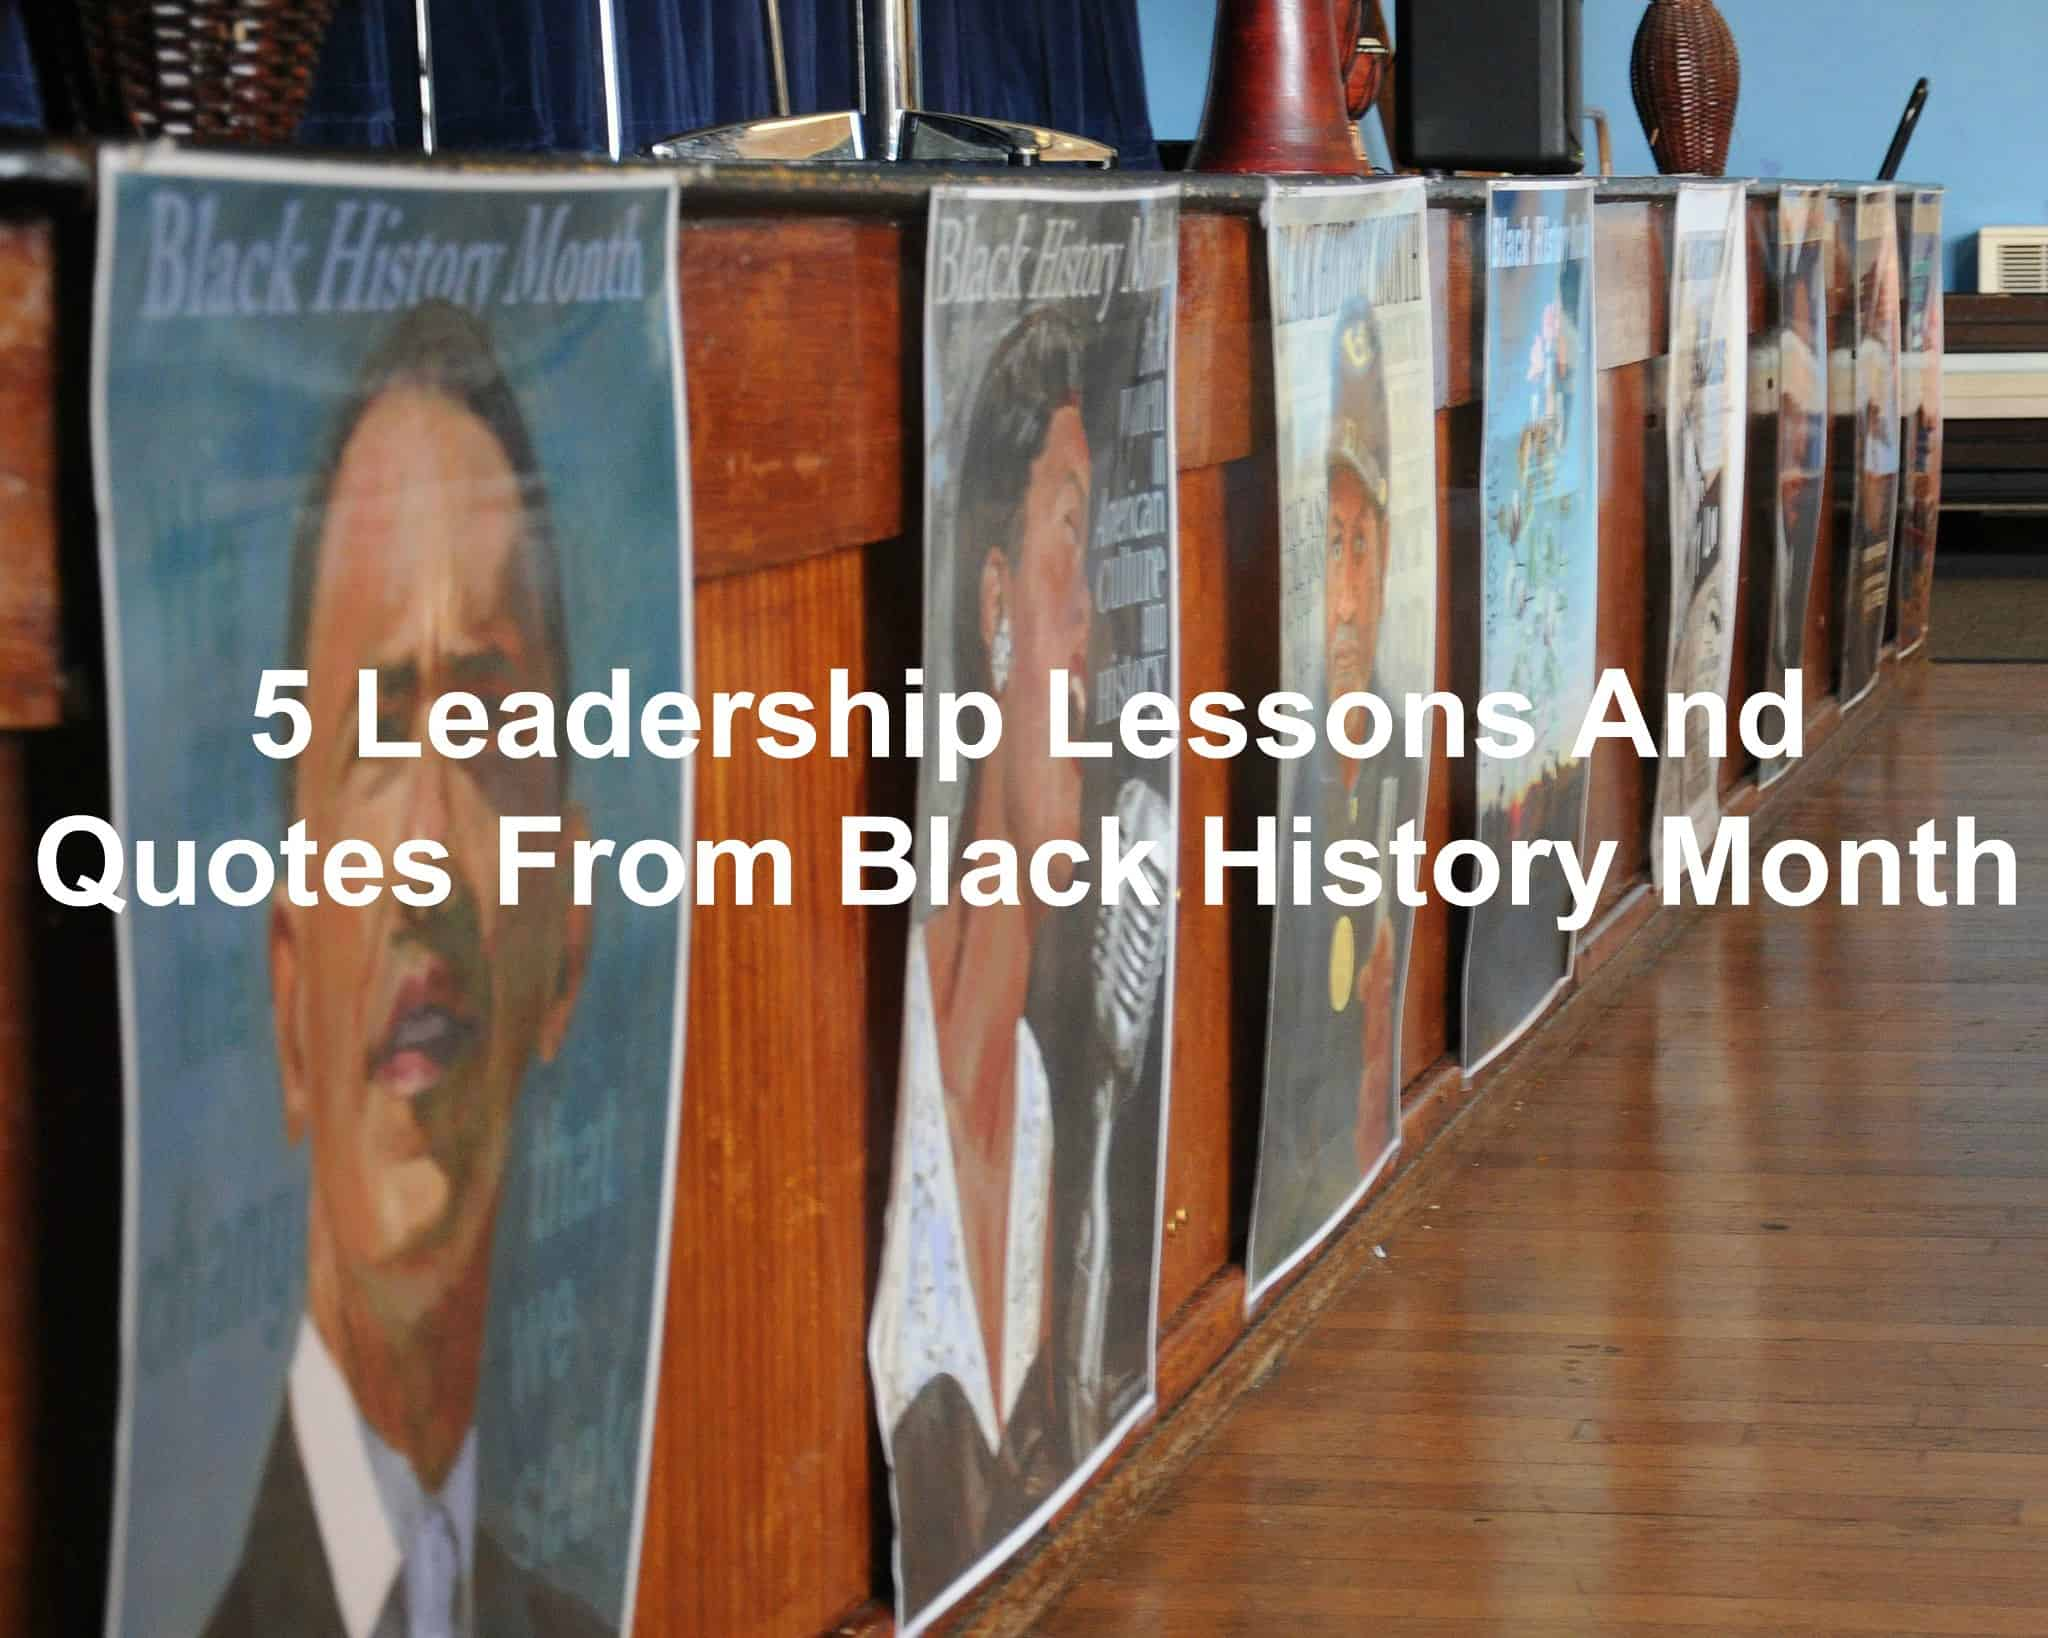 Lessons on leadership from African-American leaders